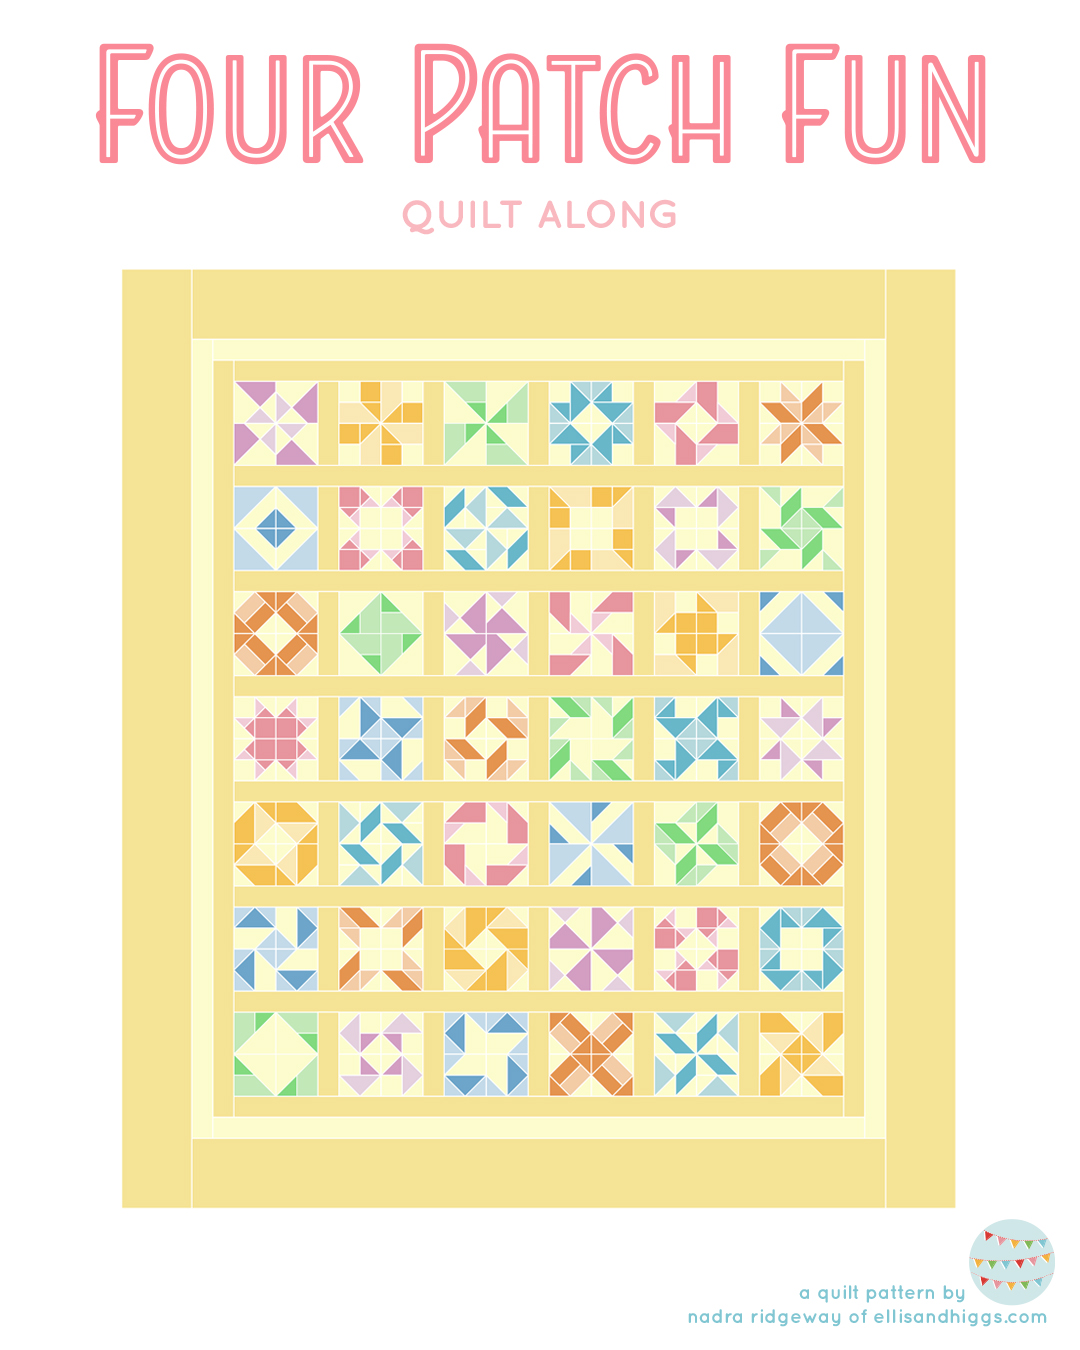 Four Patch Fun quilt layout